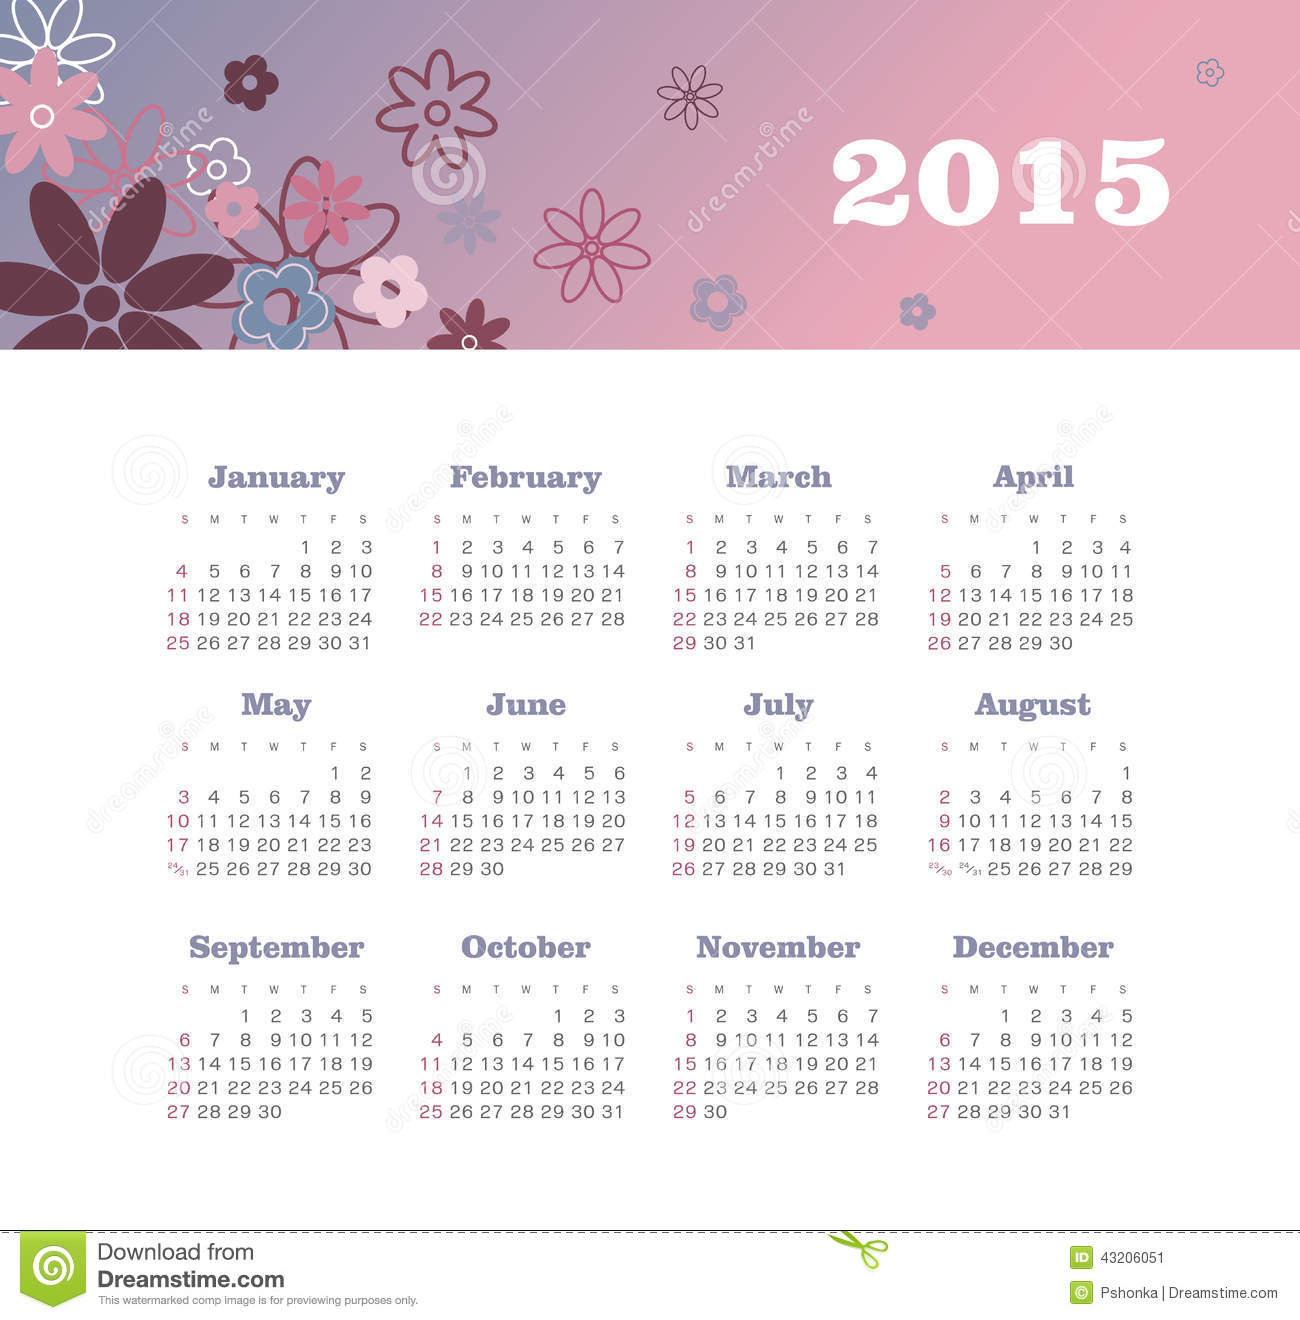 Calendar 2015 year with flowers